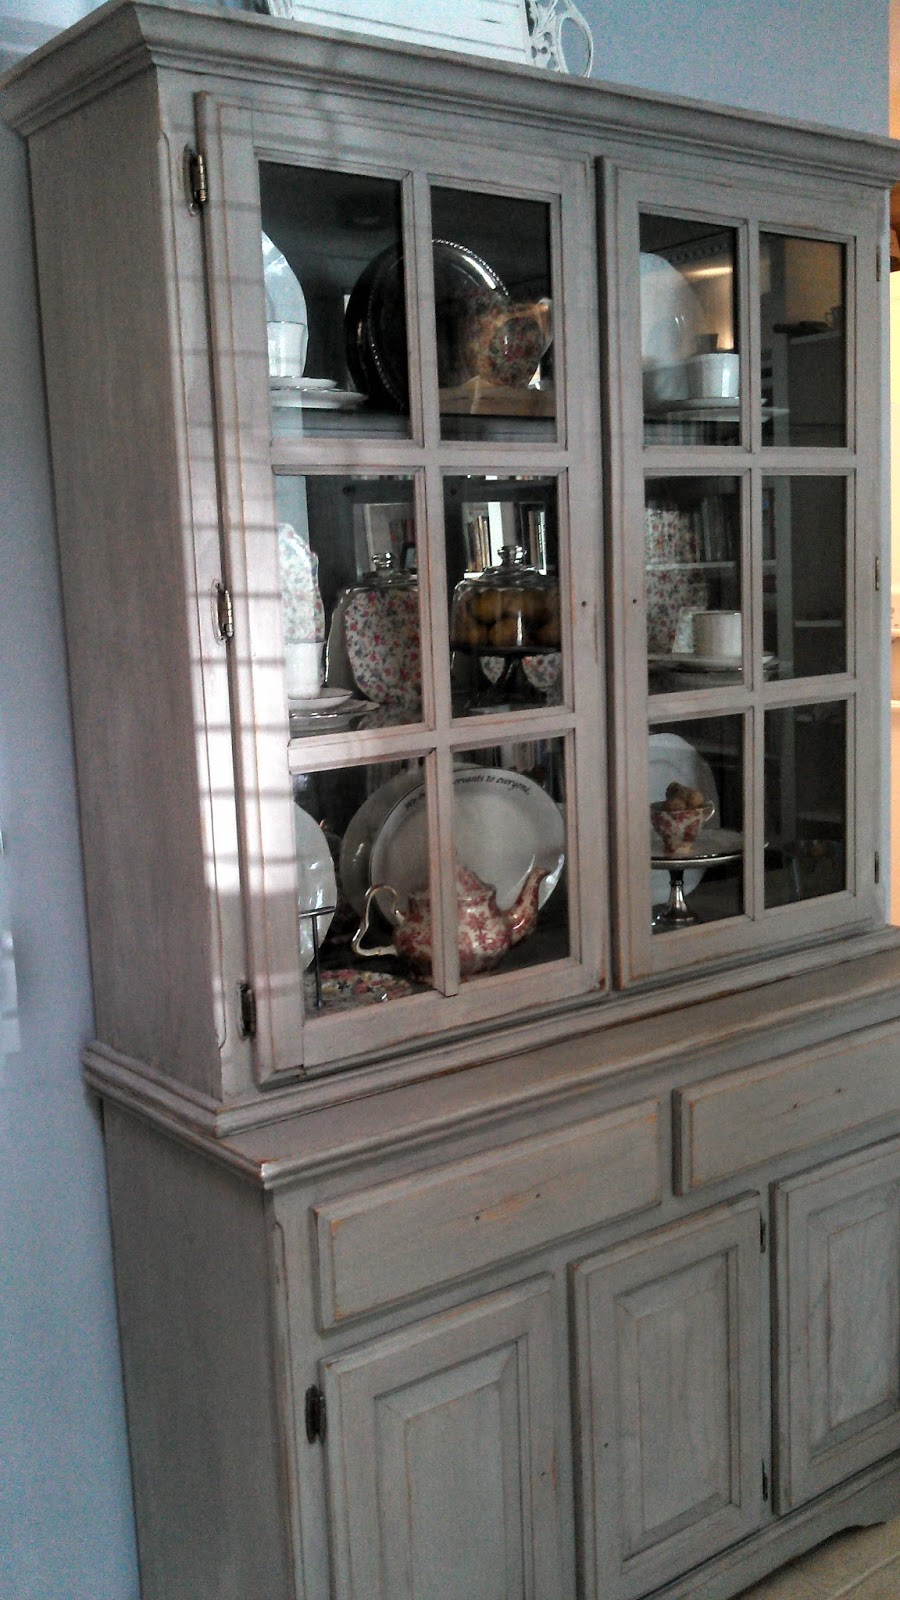 Le Roux: China Cabinet before & after